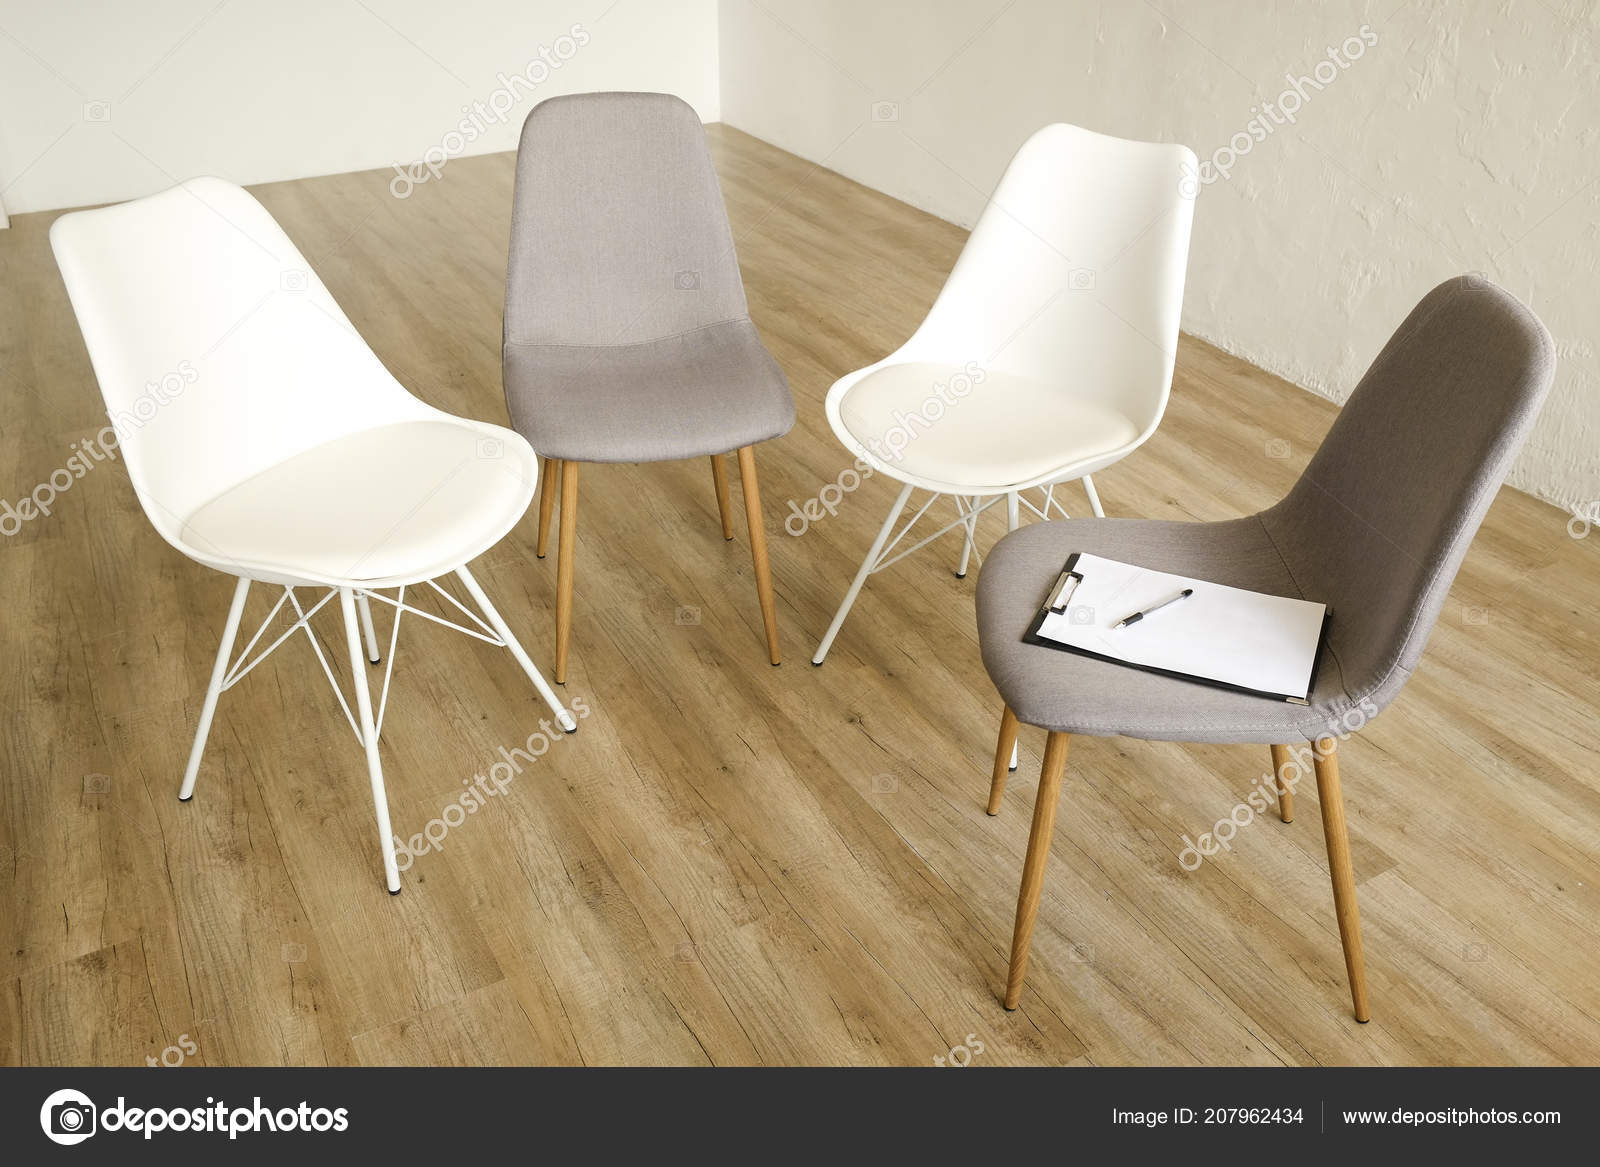 Ordinaire Multiple Loft Style Empty Chairs Standing Row Wooden Floor Counselor U2014  Stock Photo